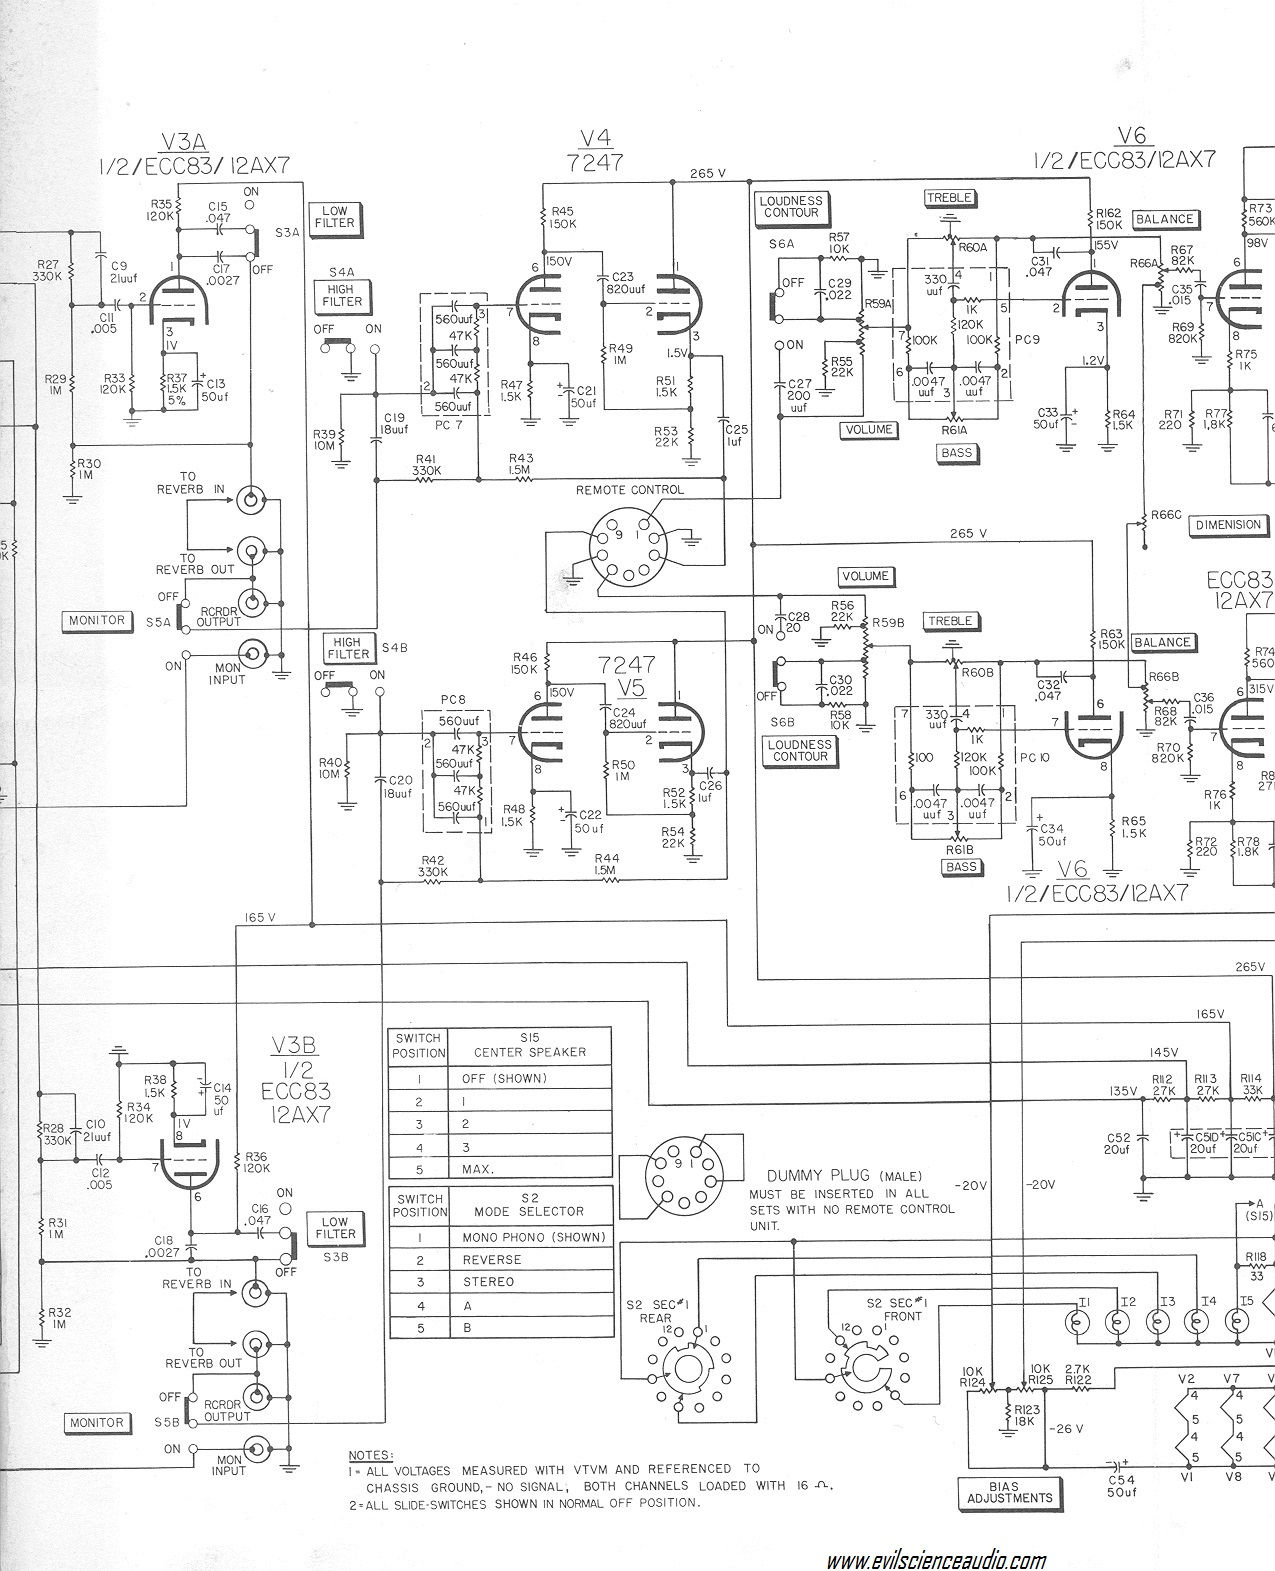 switch mode power supply reference manual